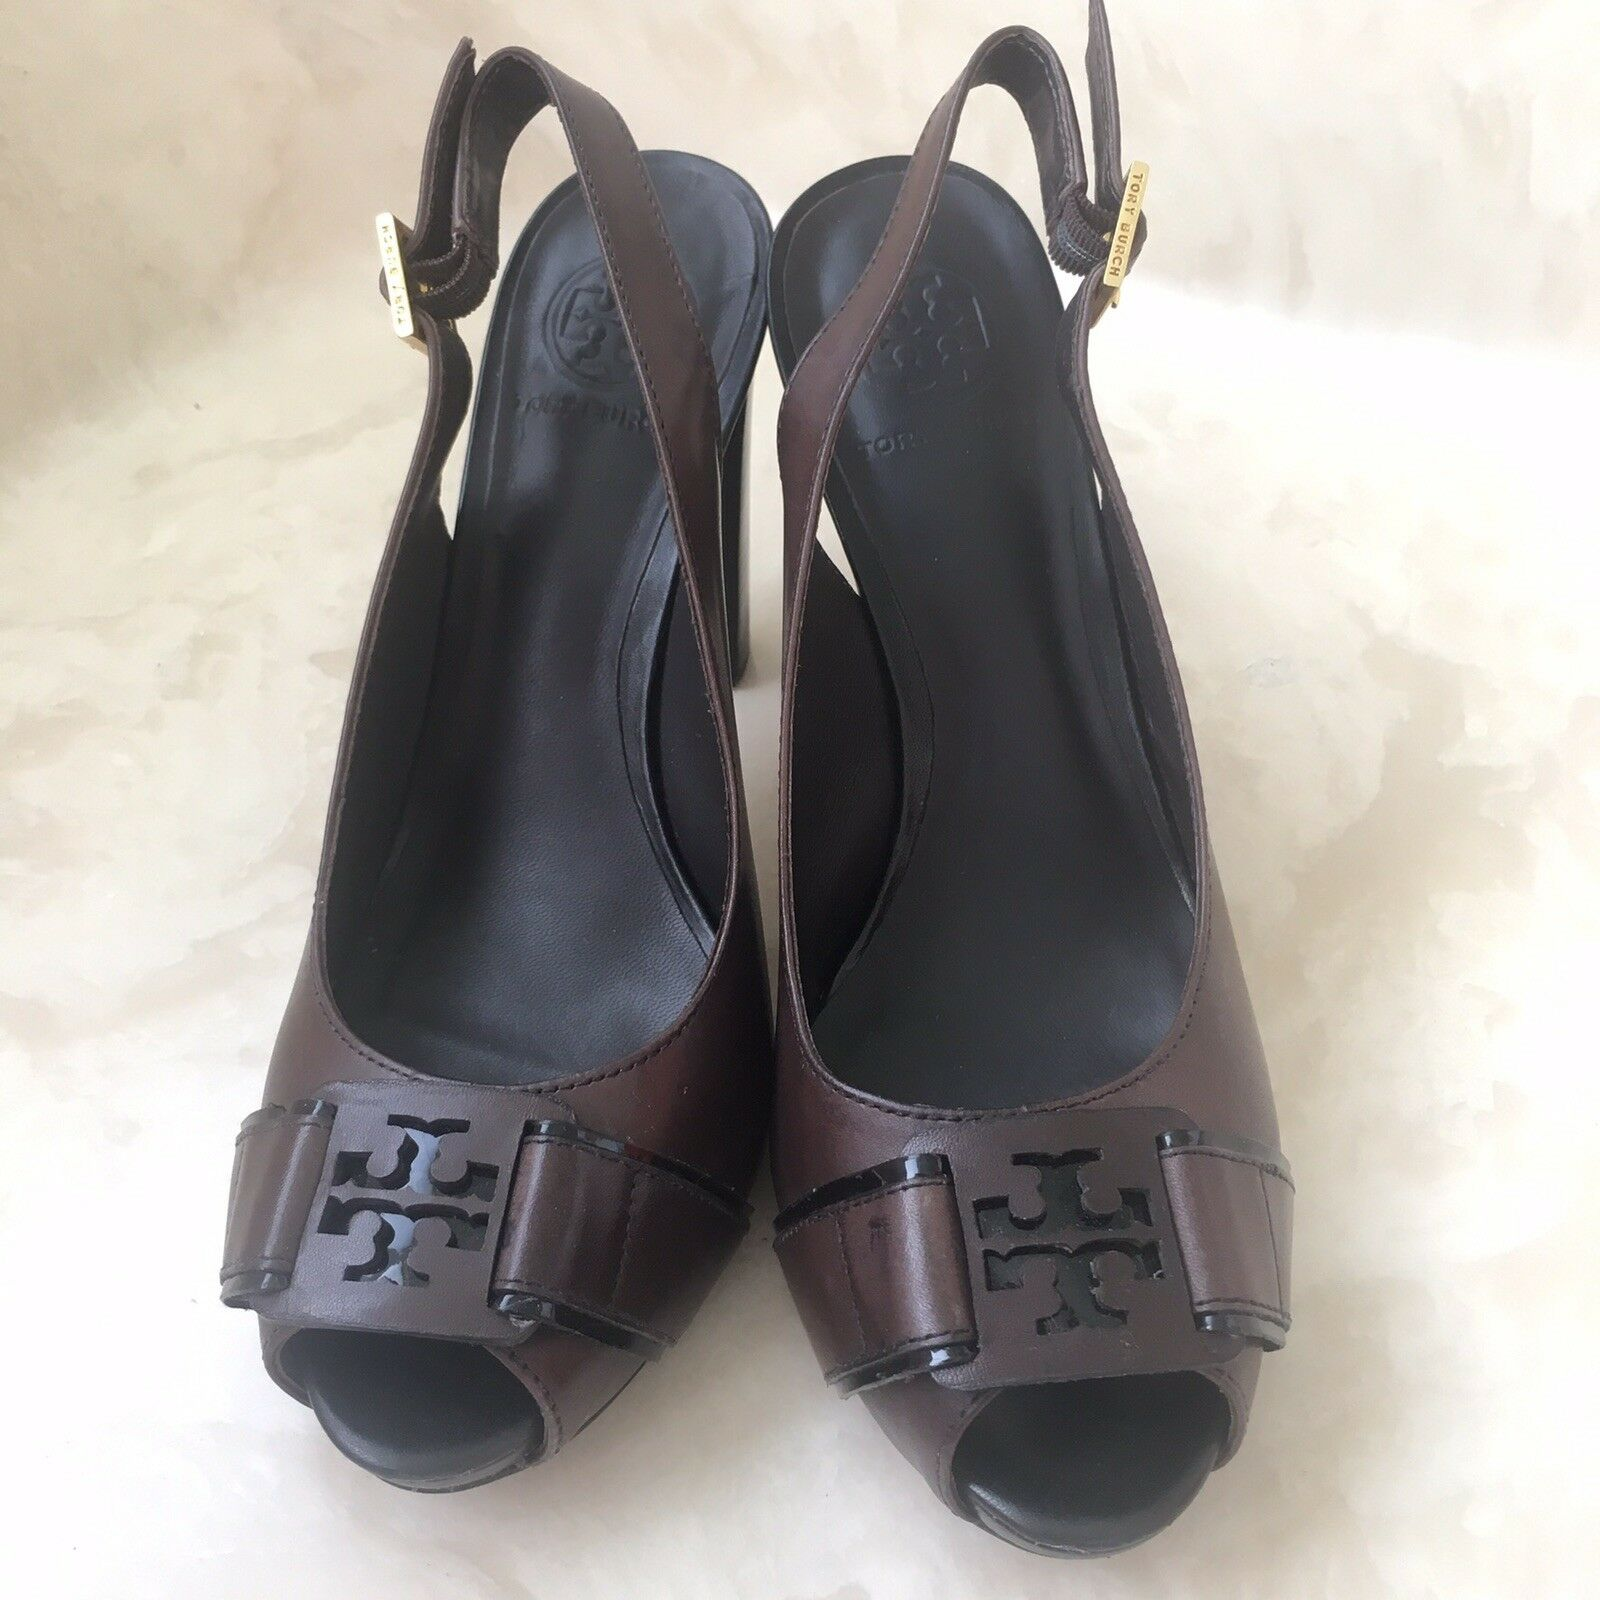 vendite online Tory Tory Tory Burch Marrone leather heels  centro commerciale online integrato professionale